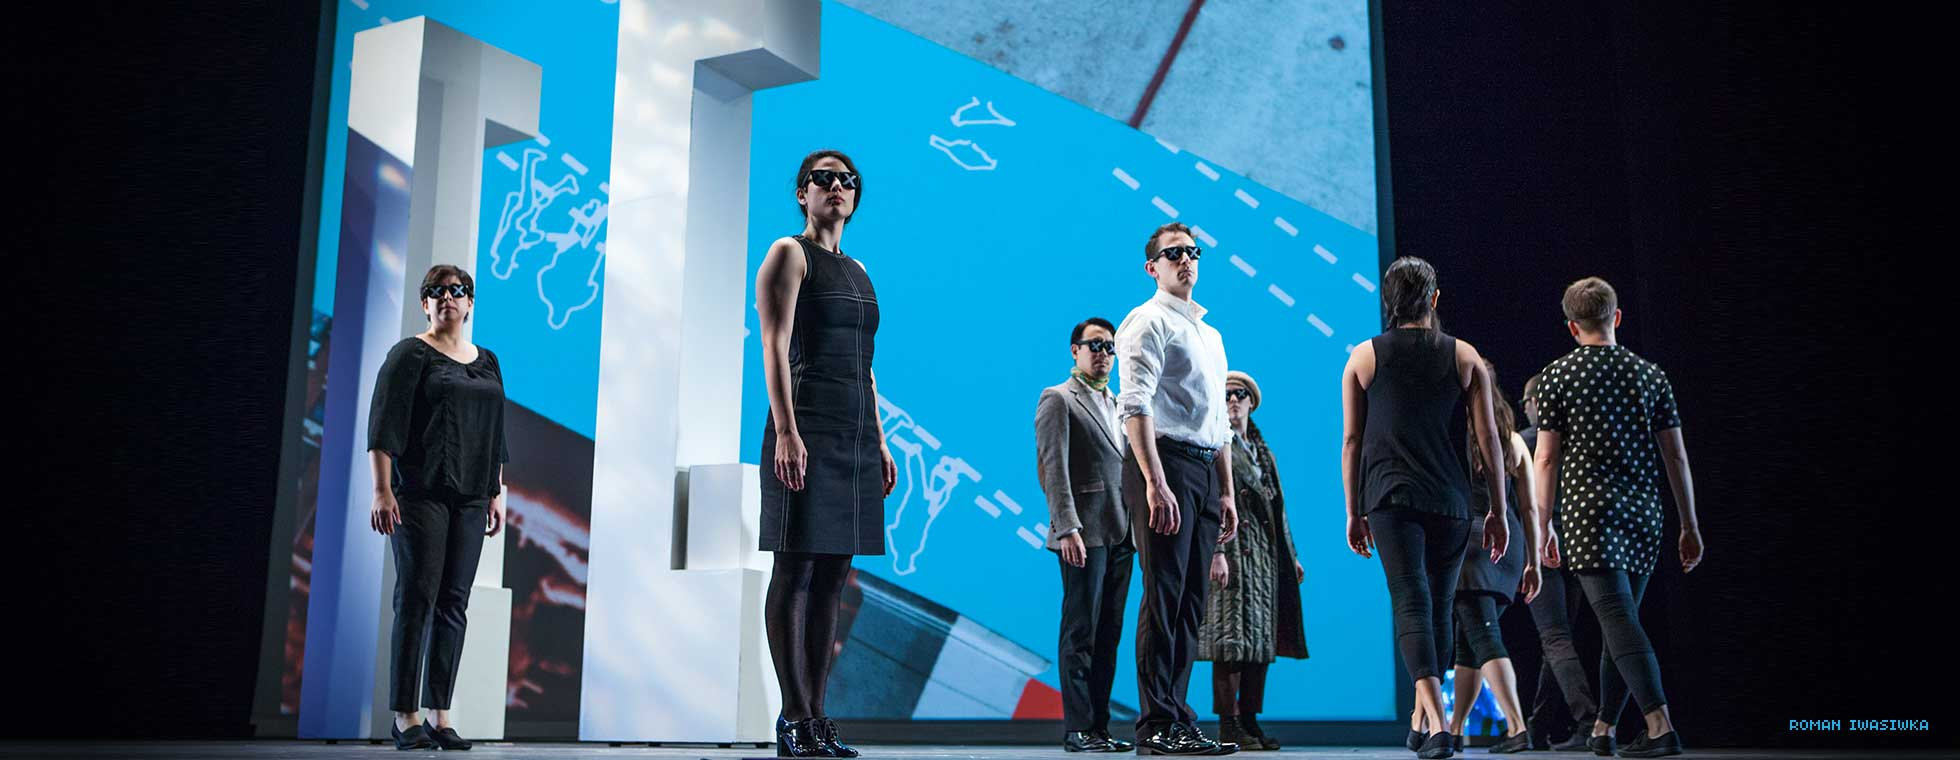 Actors stand on stage wearing sunglasses while surrounded by projections of graphs and maps.